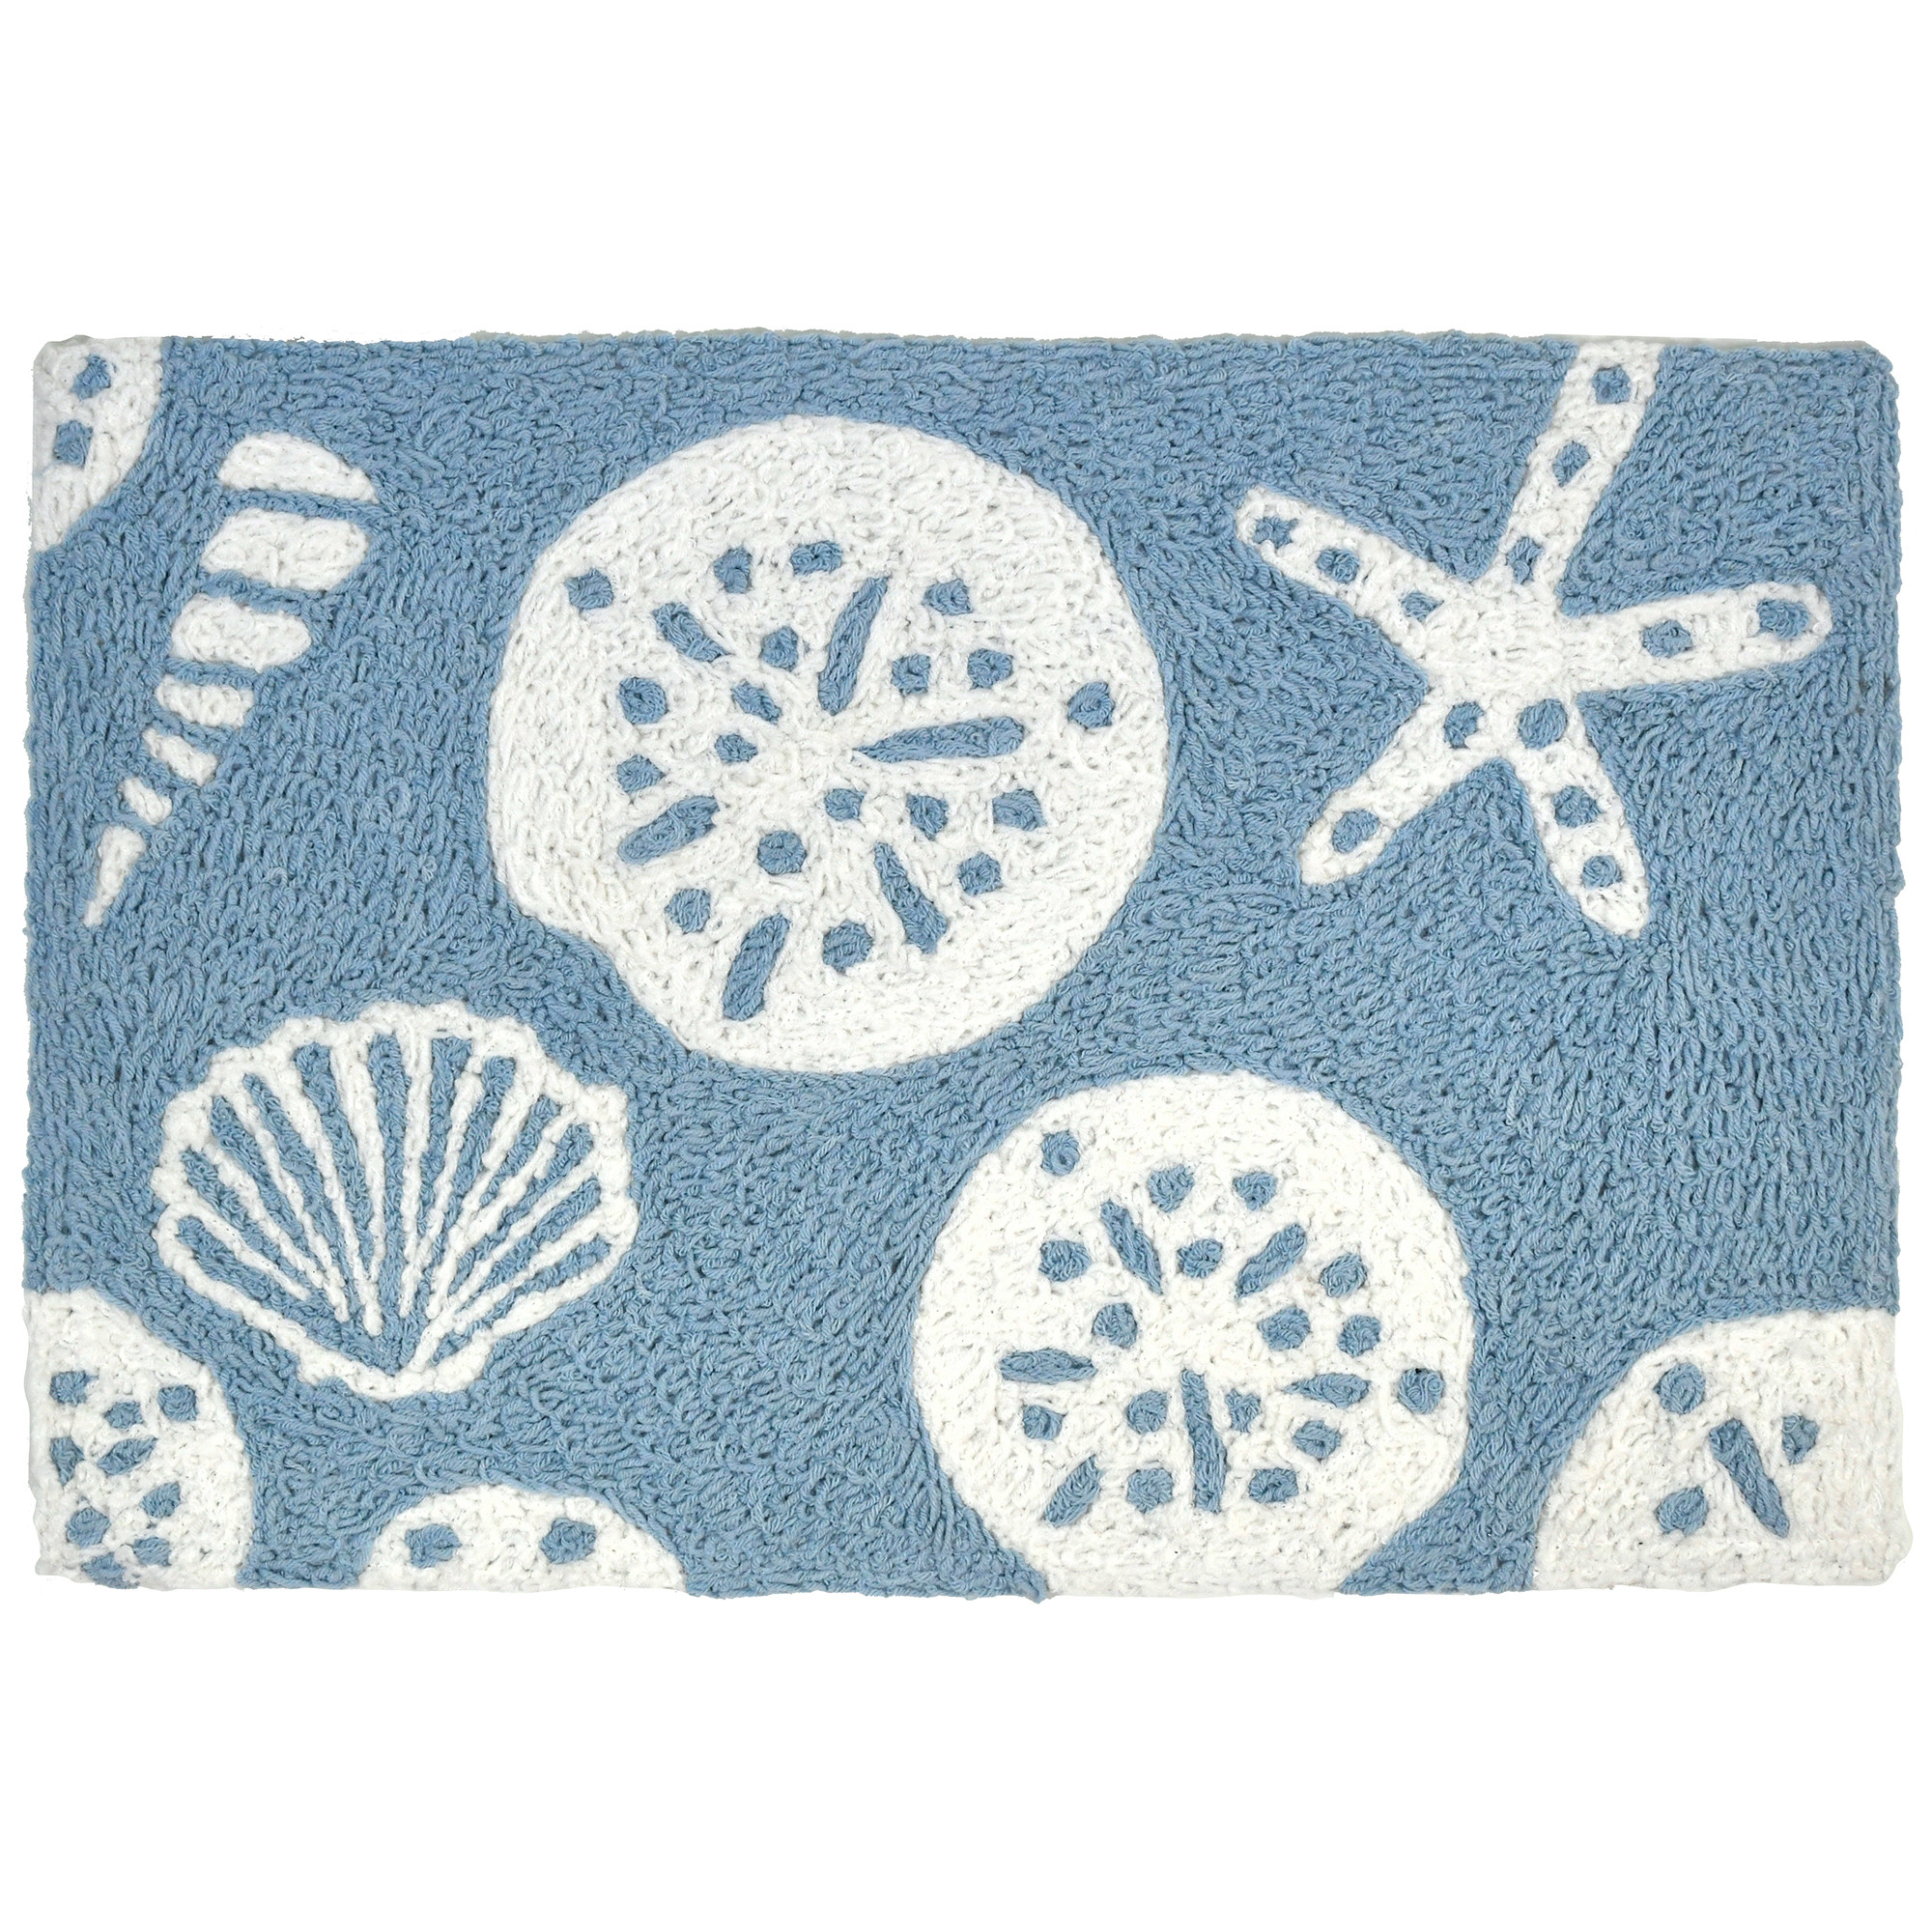 Artist Kris Ruff captured the beauty of shells with this coastal themed Jellybean® accent rug. White shells are scattered against a blue background representing clear skies and water. This two-toned accent rug is sure to make a welcomed statement whether indoors or out. The polyester fibers are machine washable.